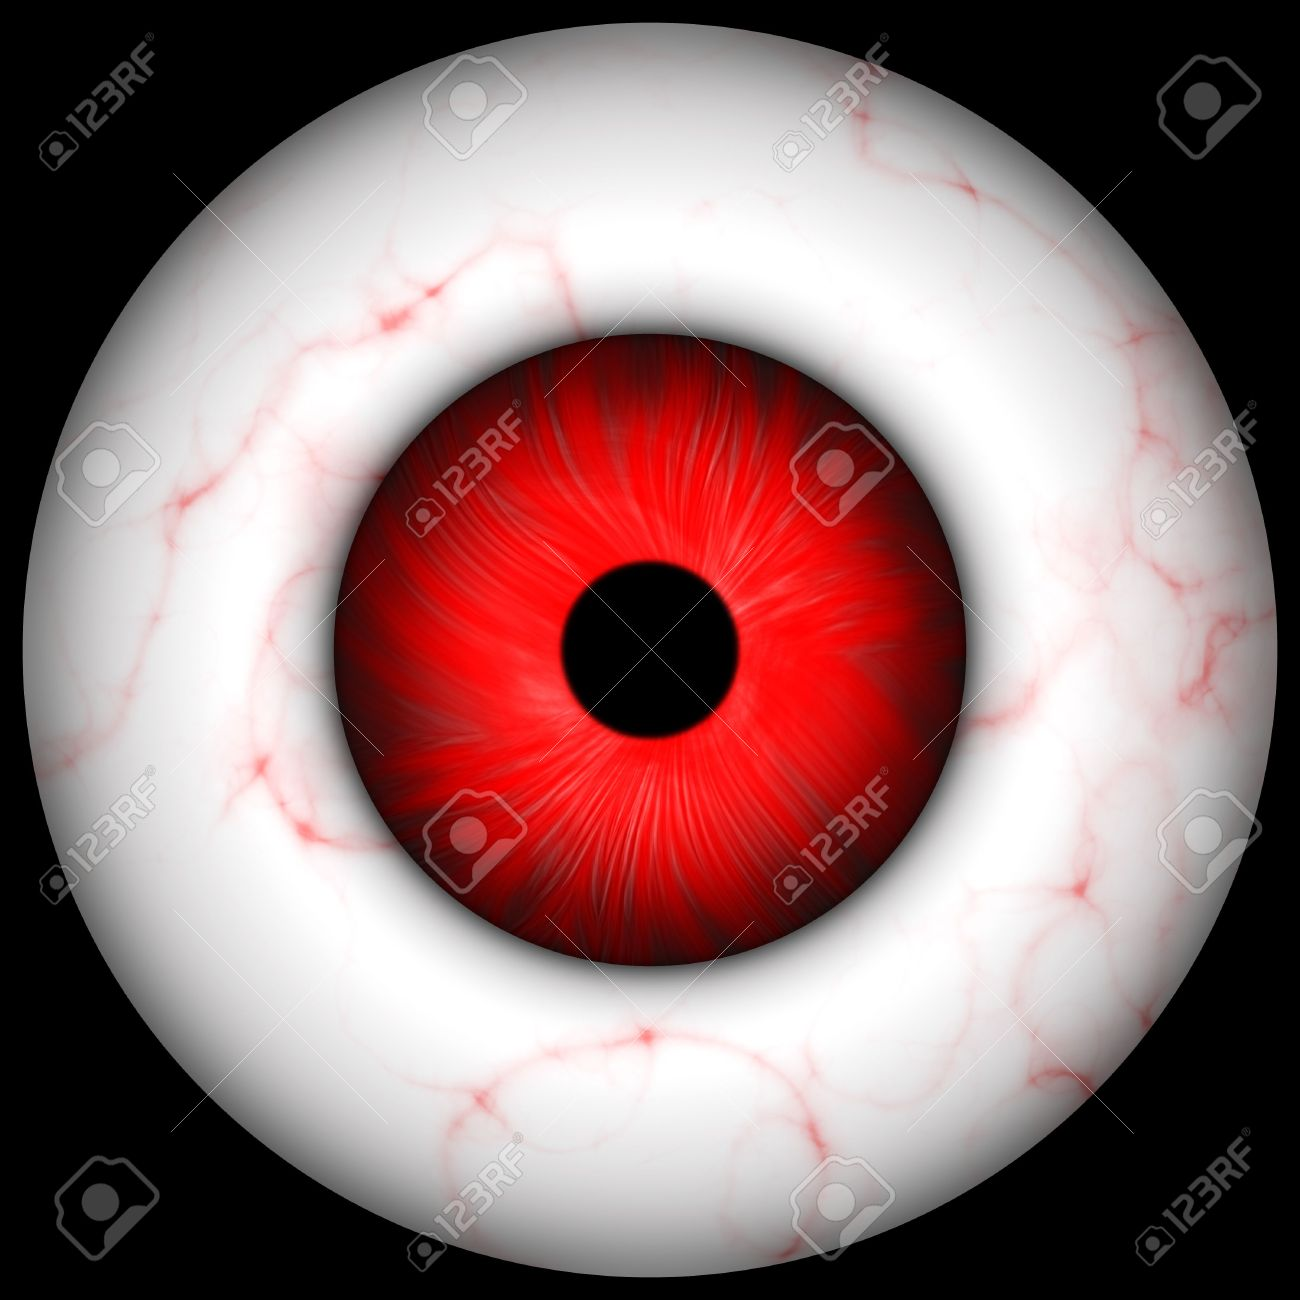 Red Creepy Scary Eye Over Black Great For Halloween Stock Photo Picture And Royalty Free Image Image 3807905